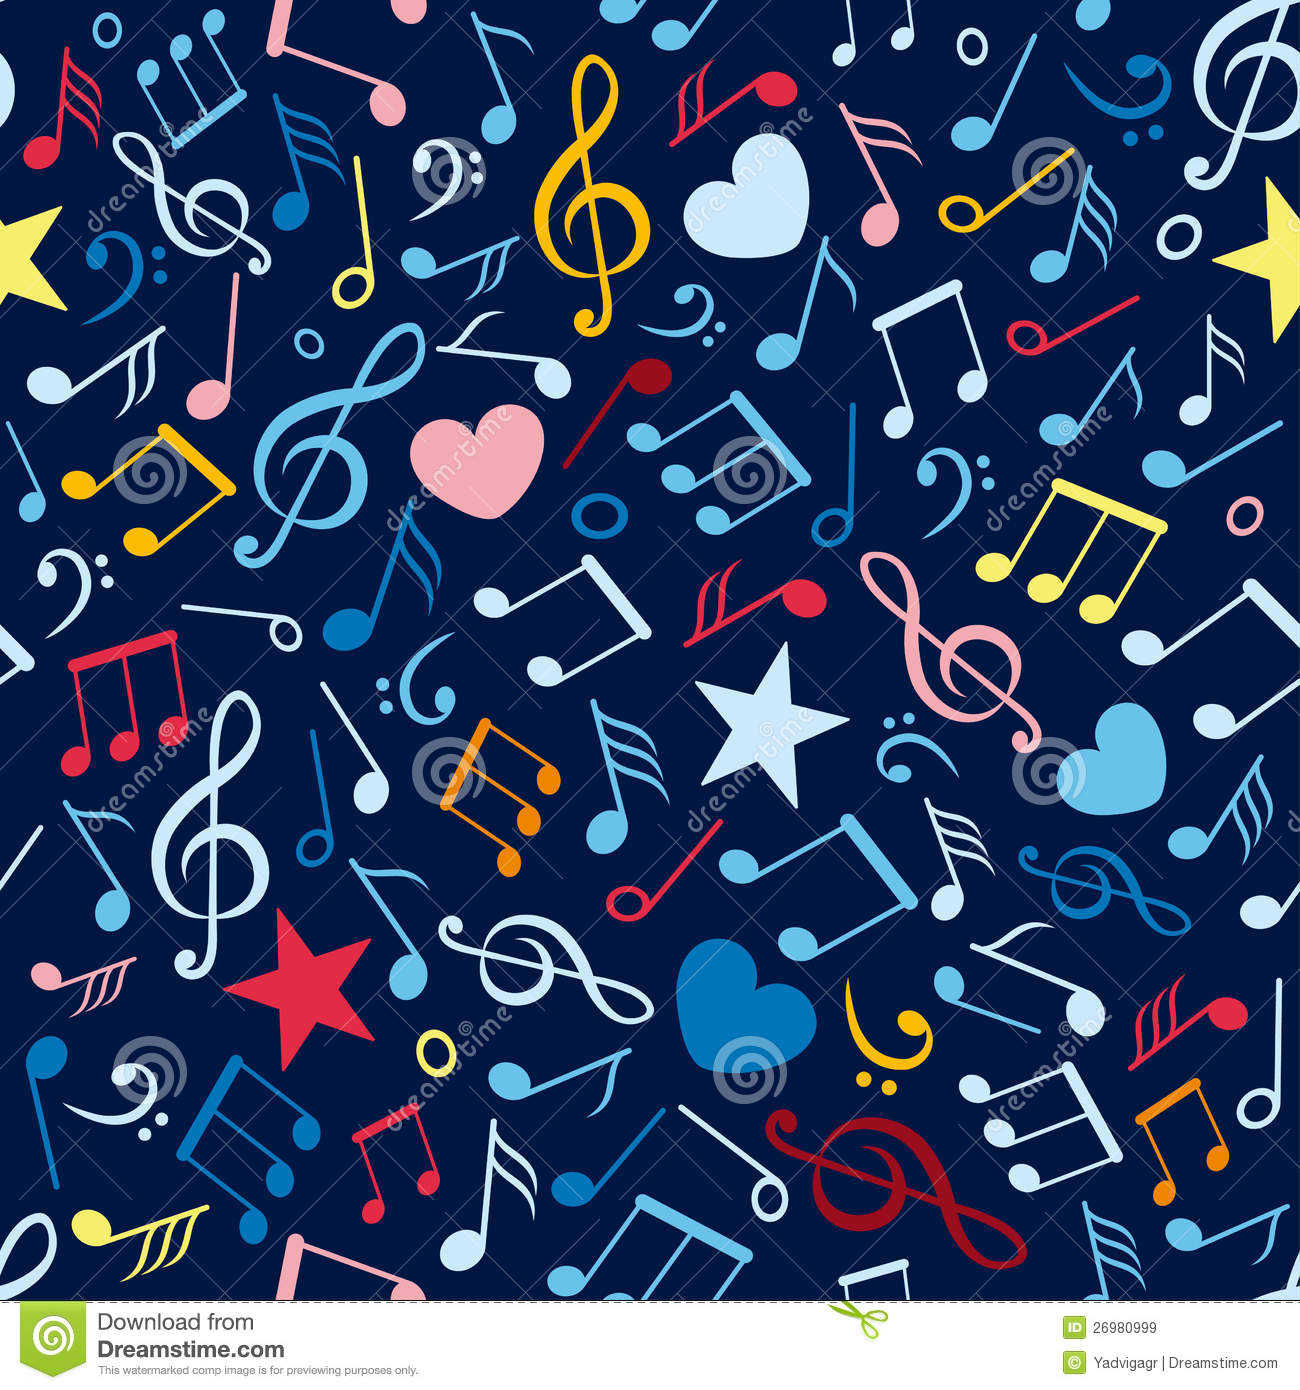 Free clipart background patterns music notes picture royalty free download Free clipart background patterns music notes - ClipartFest picture royalty free download